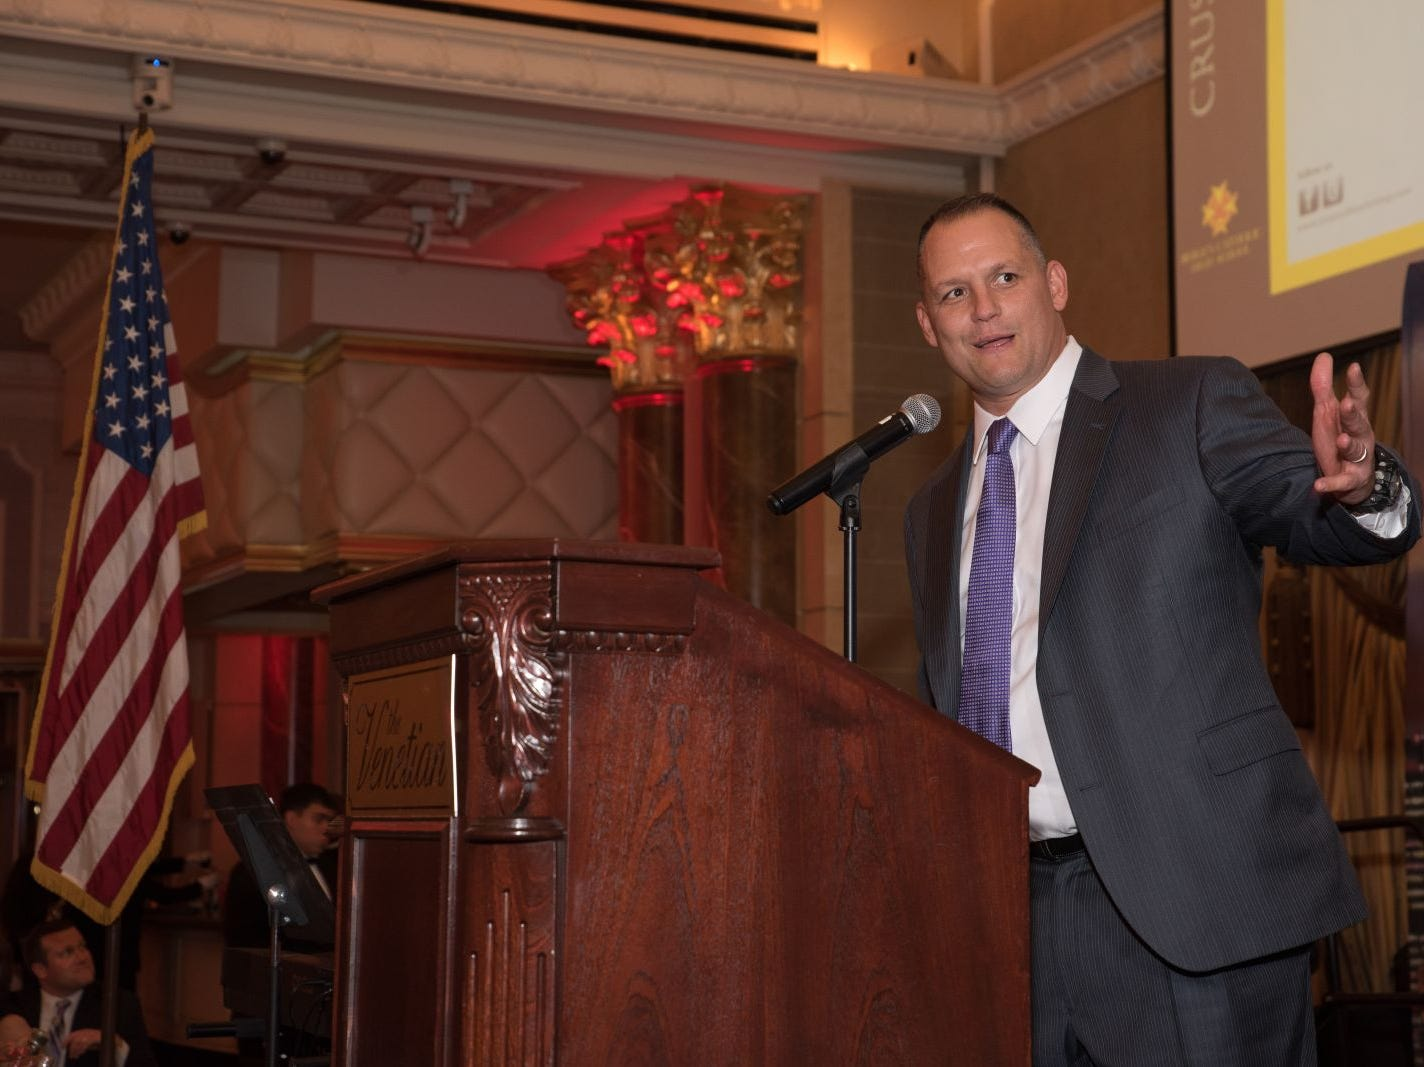 Head Football Coach Vito Campanile. Bergen Catholic High School celebrates their 2018 Crusader Gala at The Venetian in Garfield. 11/16/2018